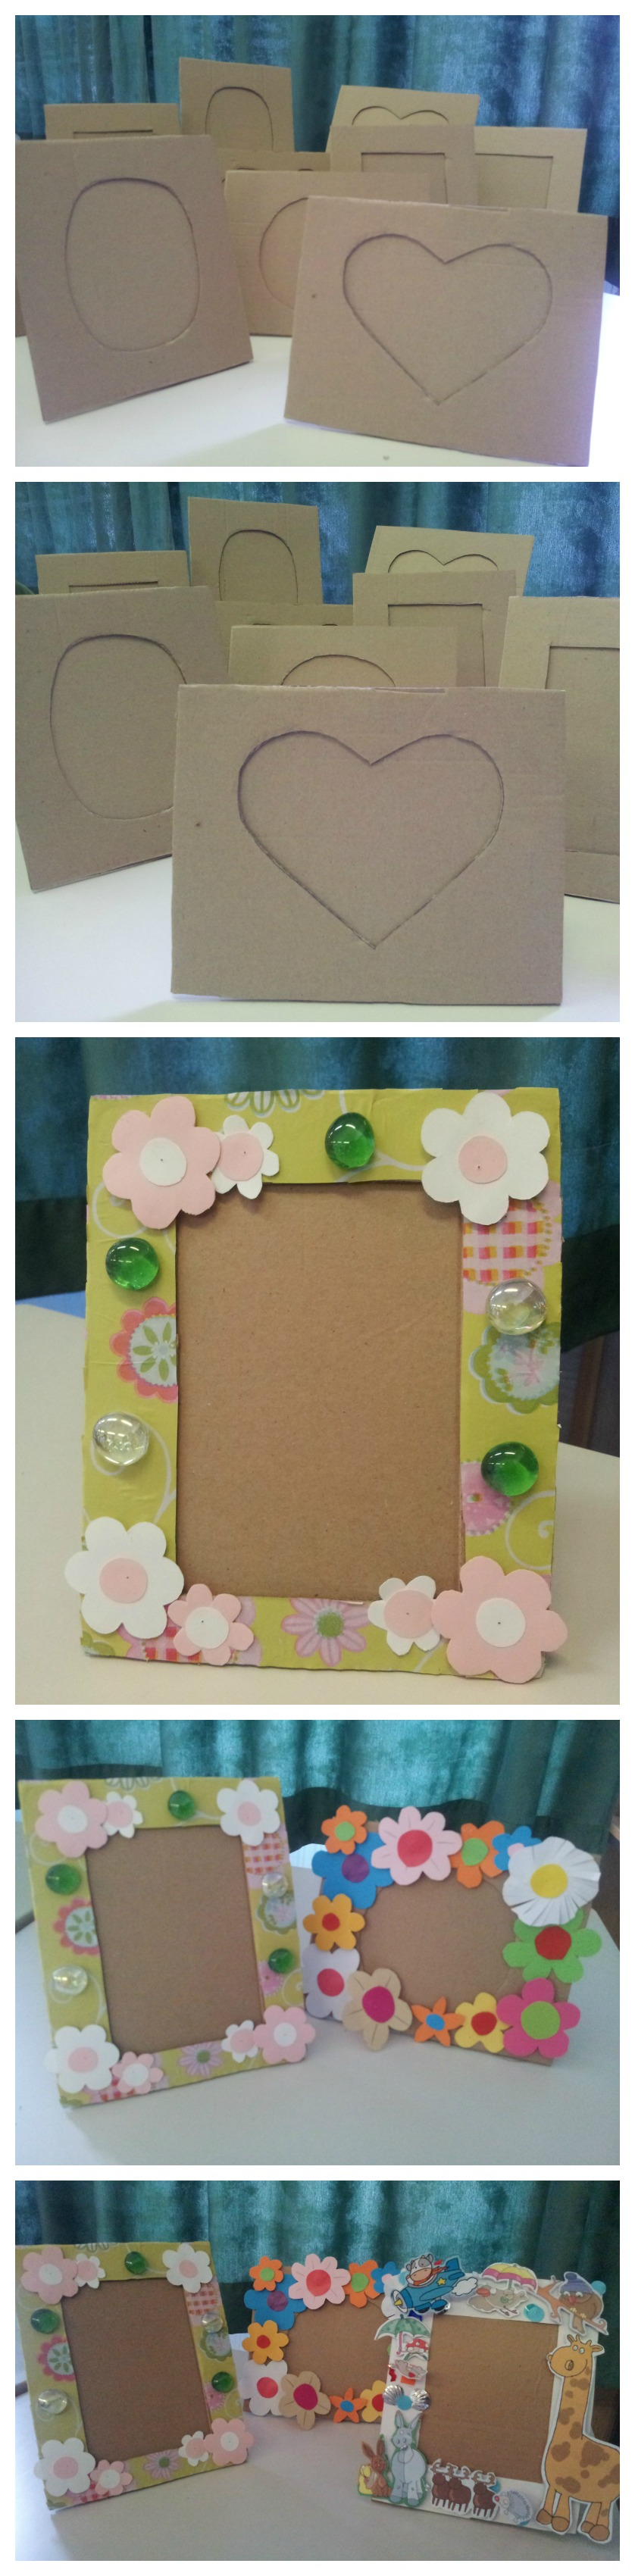 Diy paper frame kids activities my school crafts pinterest diy paper frame kids activities jeuxipadfo Choice Image